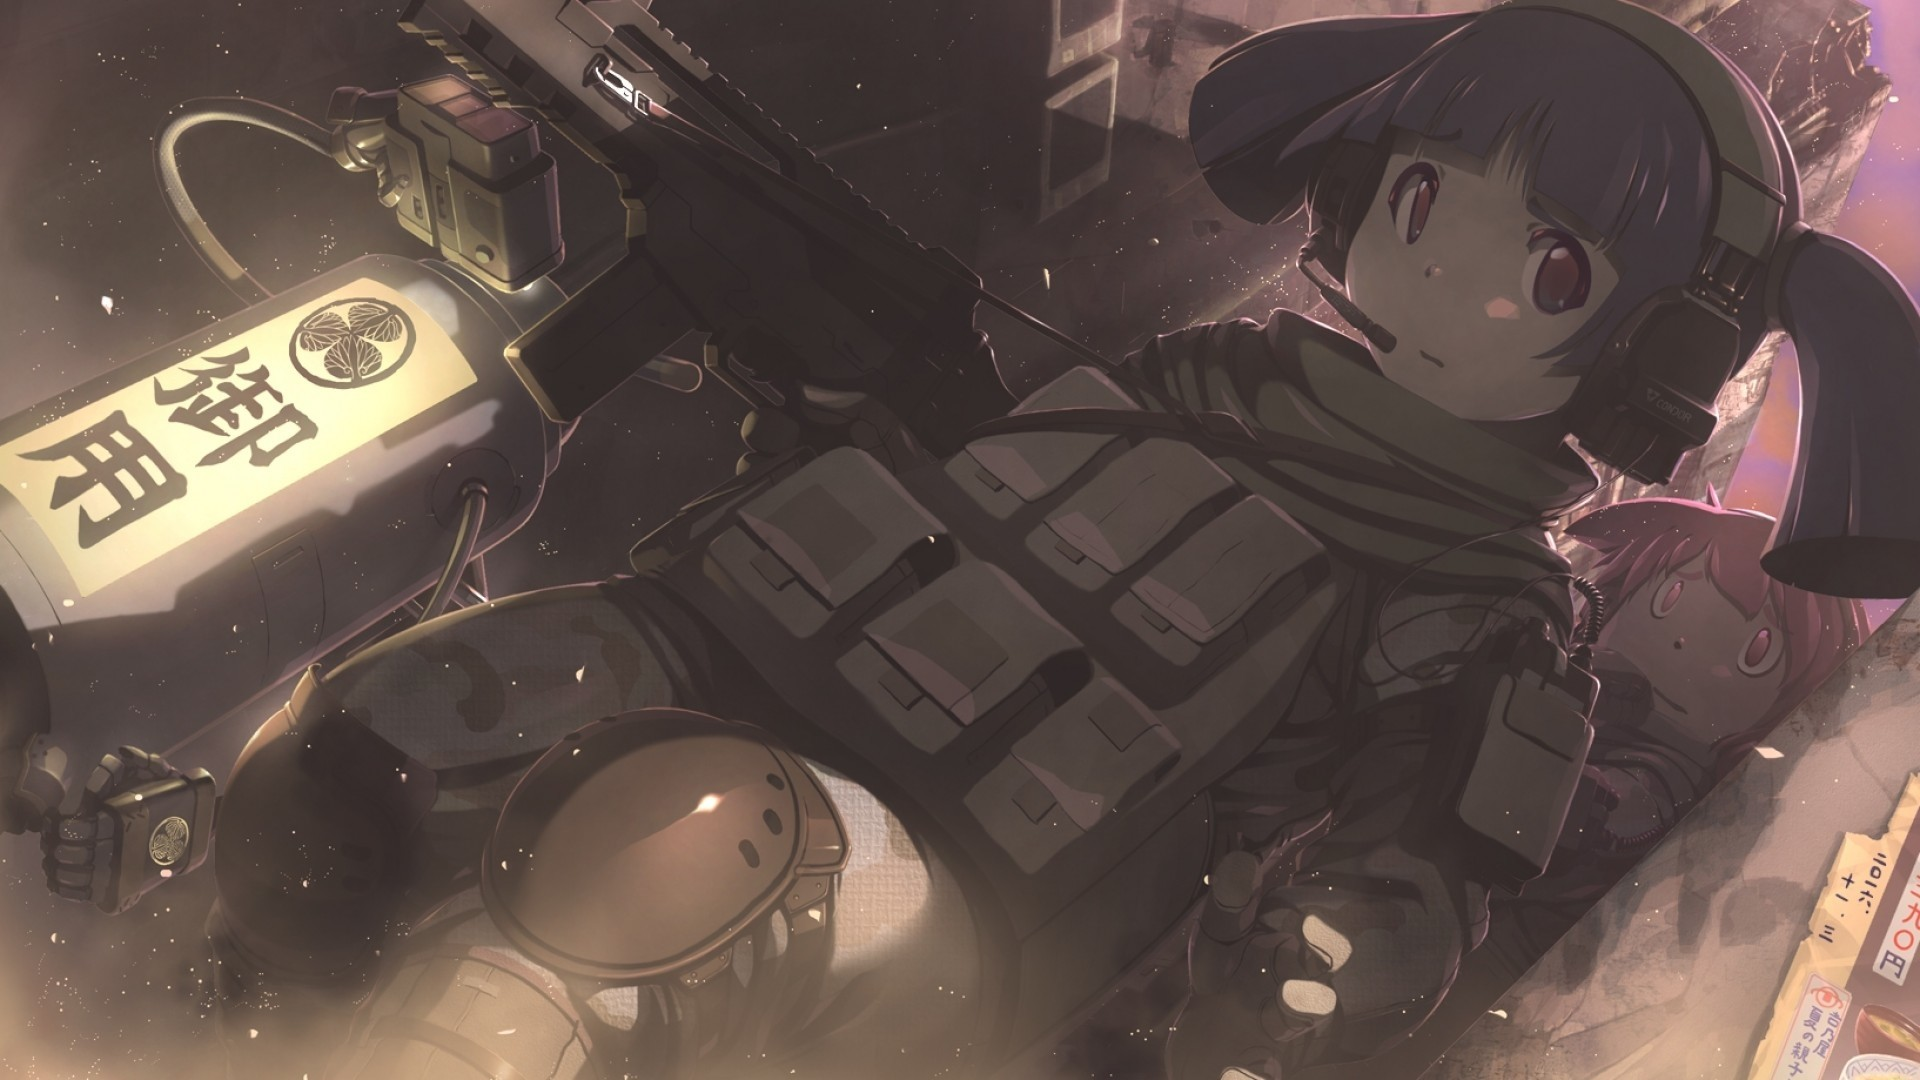 1920x1080 Anime Military Wallpaper Hd - Anime Girl Military Sol r Moe Guns Scared  Expression Headphones